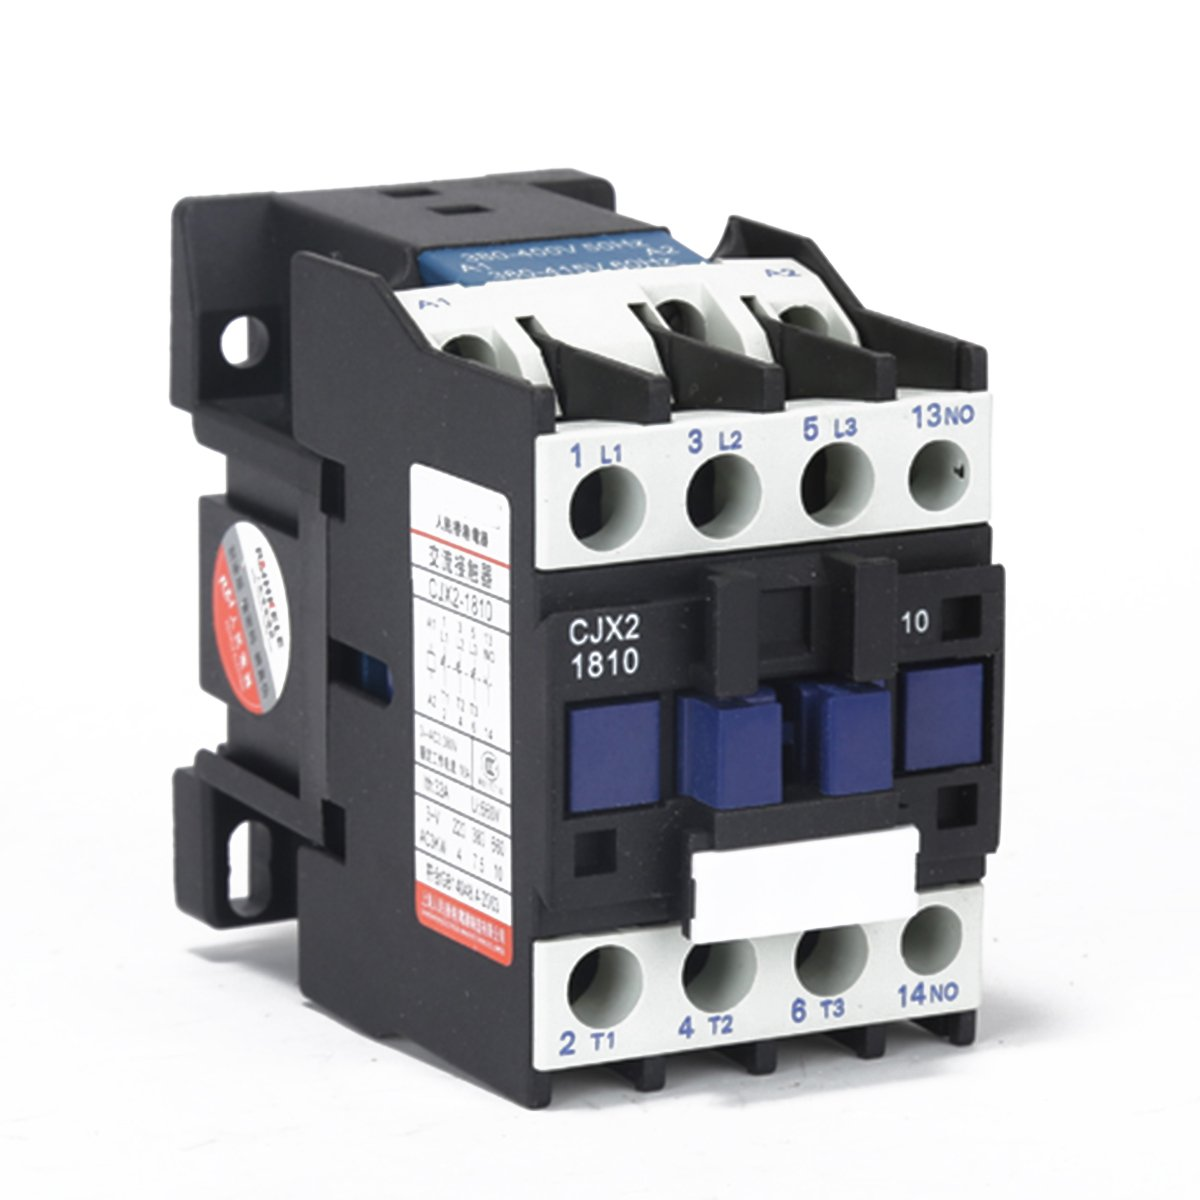 220V Coil 3-Phase AC Contactor 1NO 50/60Hz Motor Starter Relay LC1 D1810 Contactors